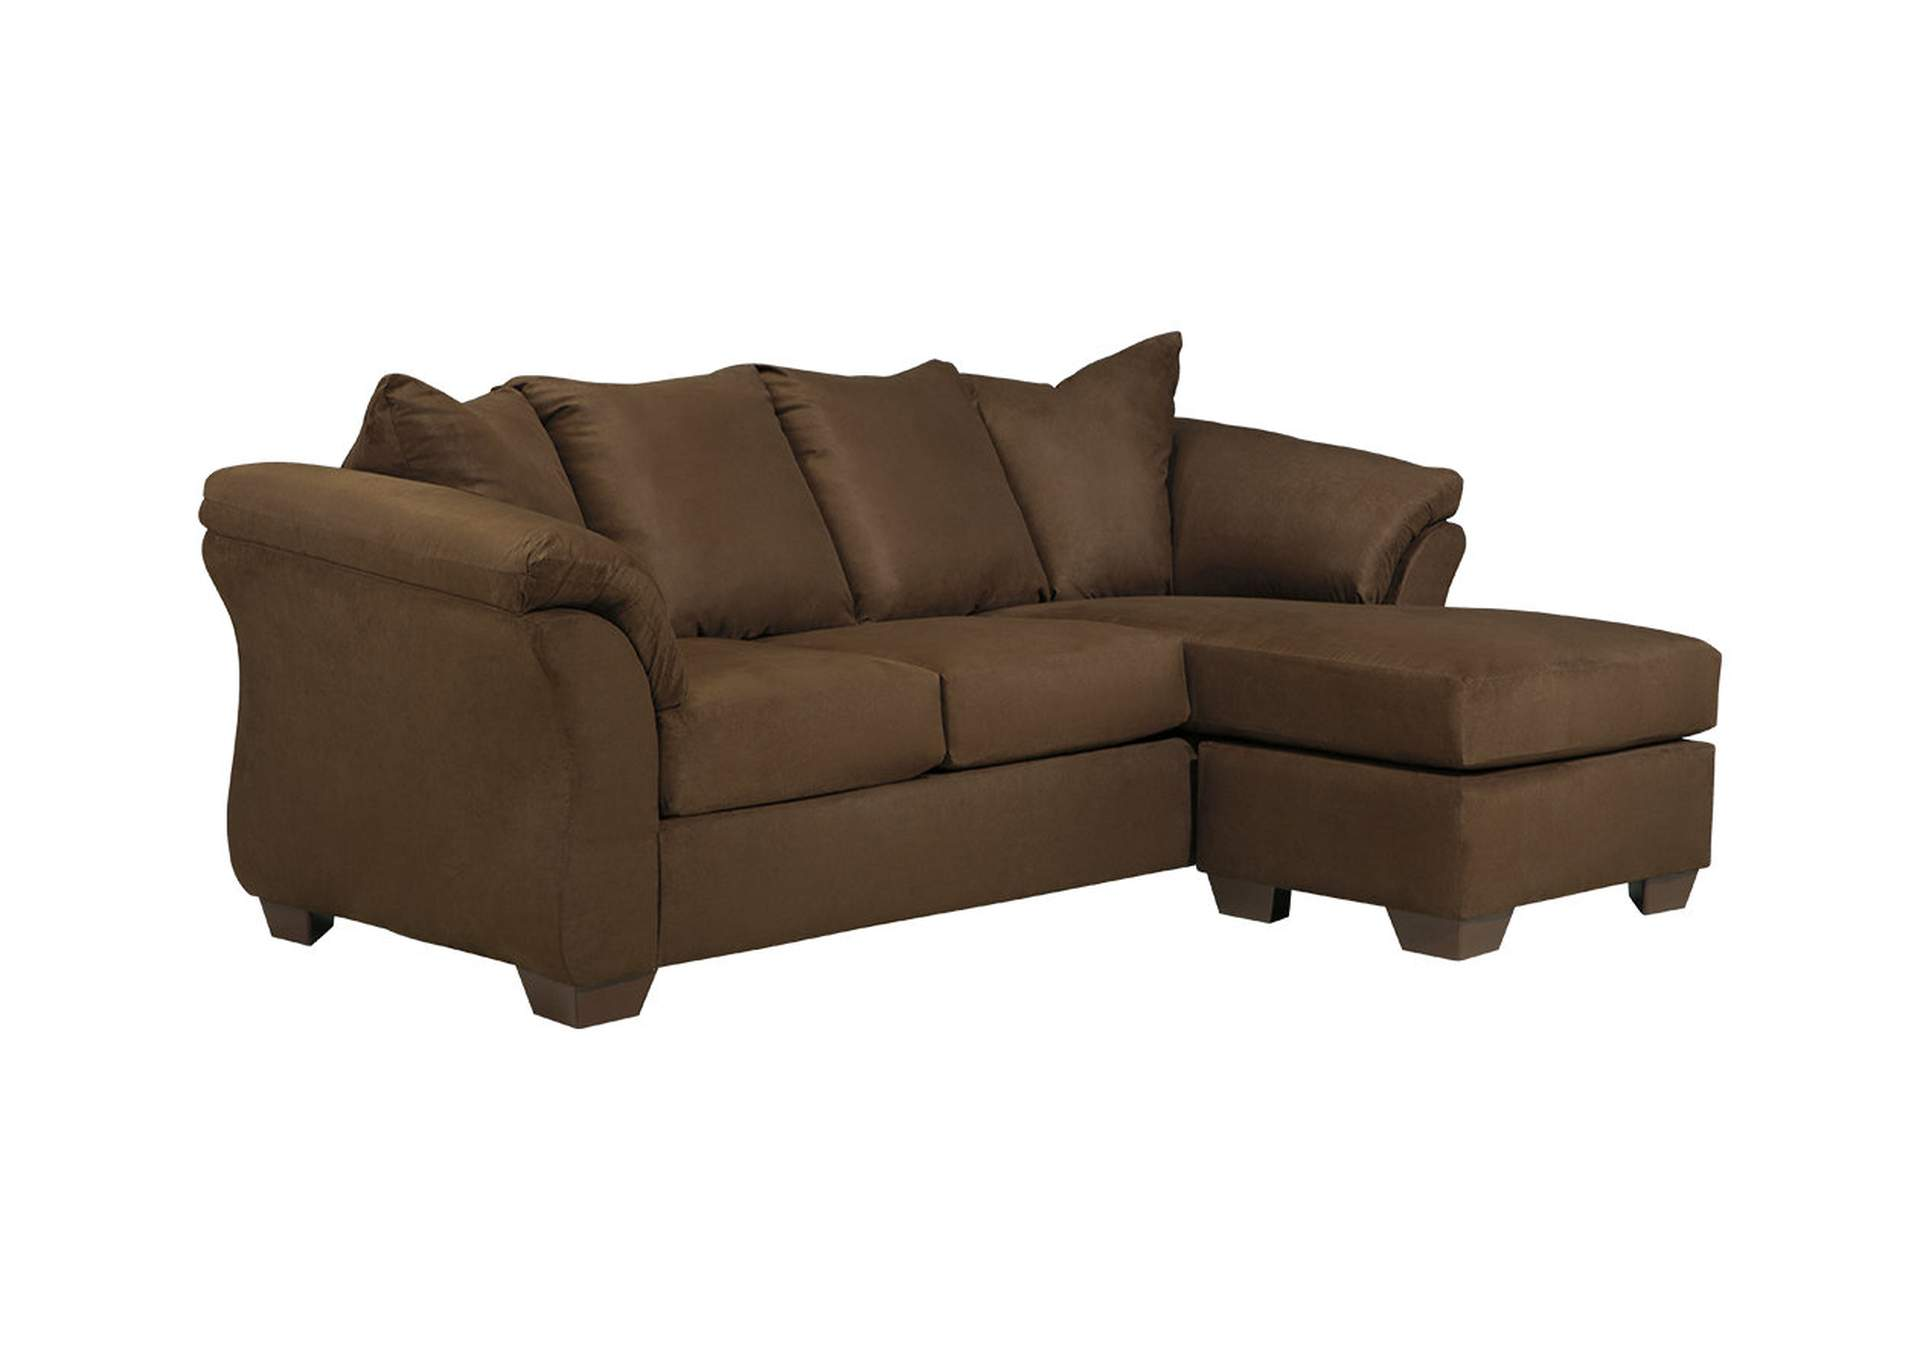 Darcy Cafe Sofa Chaise,Signature Design By Ashley